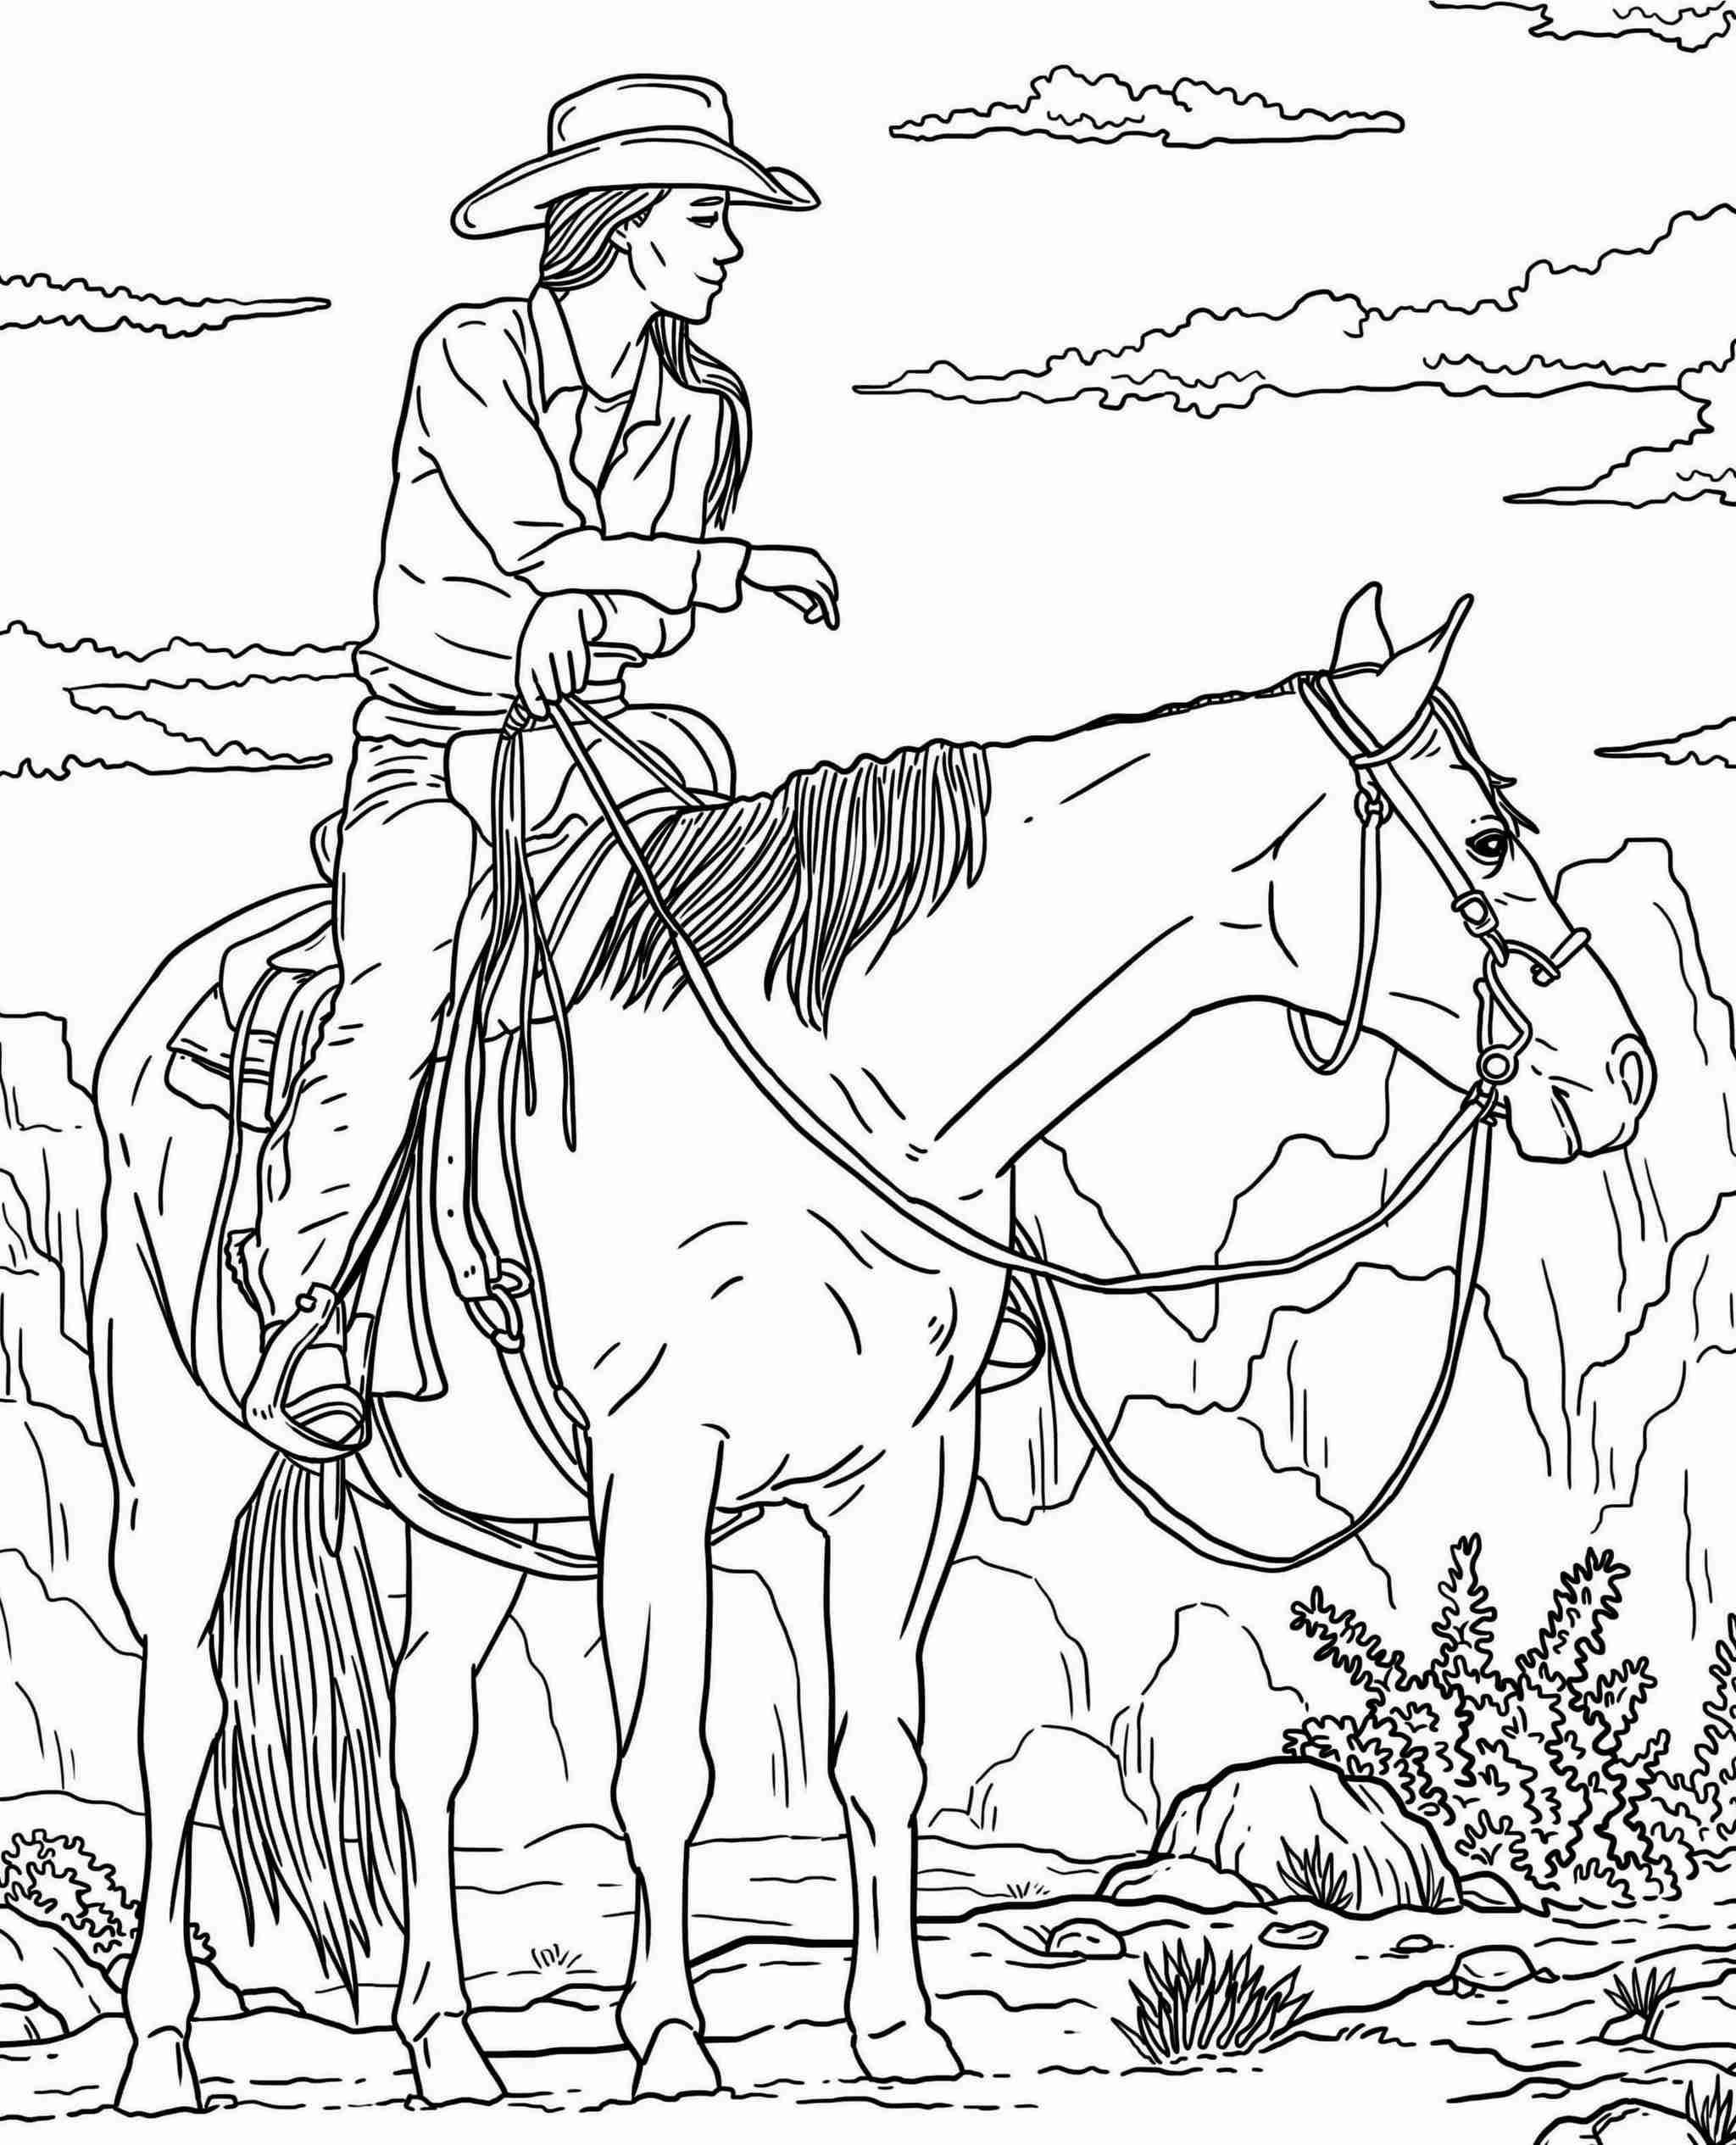 ColorIt Free Coloring Page Freebie Friday Blissful Scenes II Giddy Up 2021-02-26